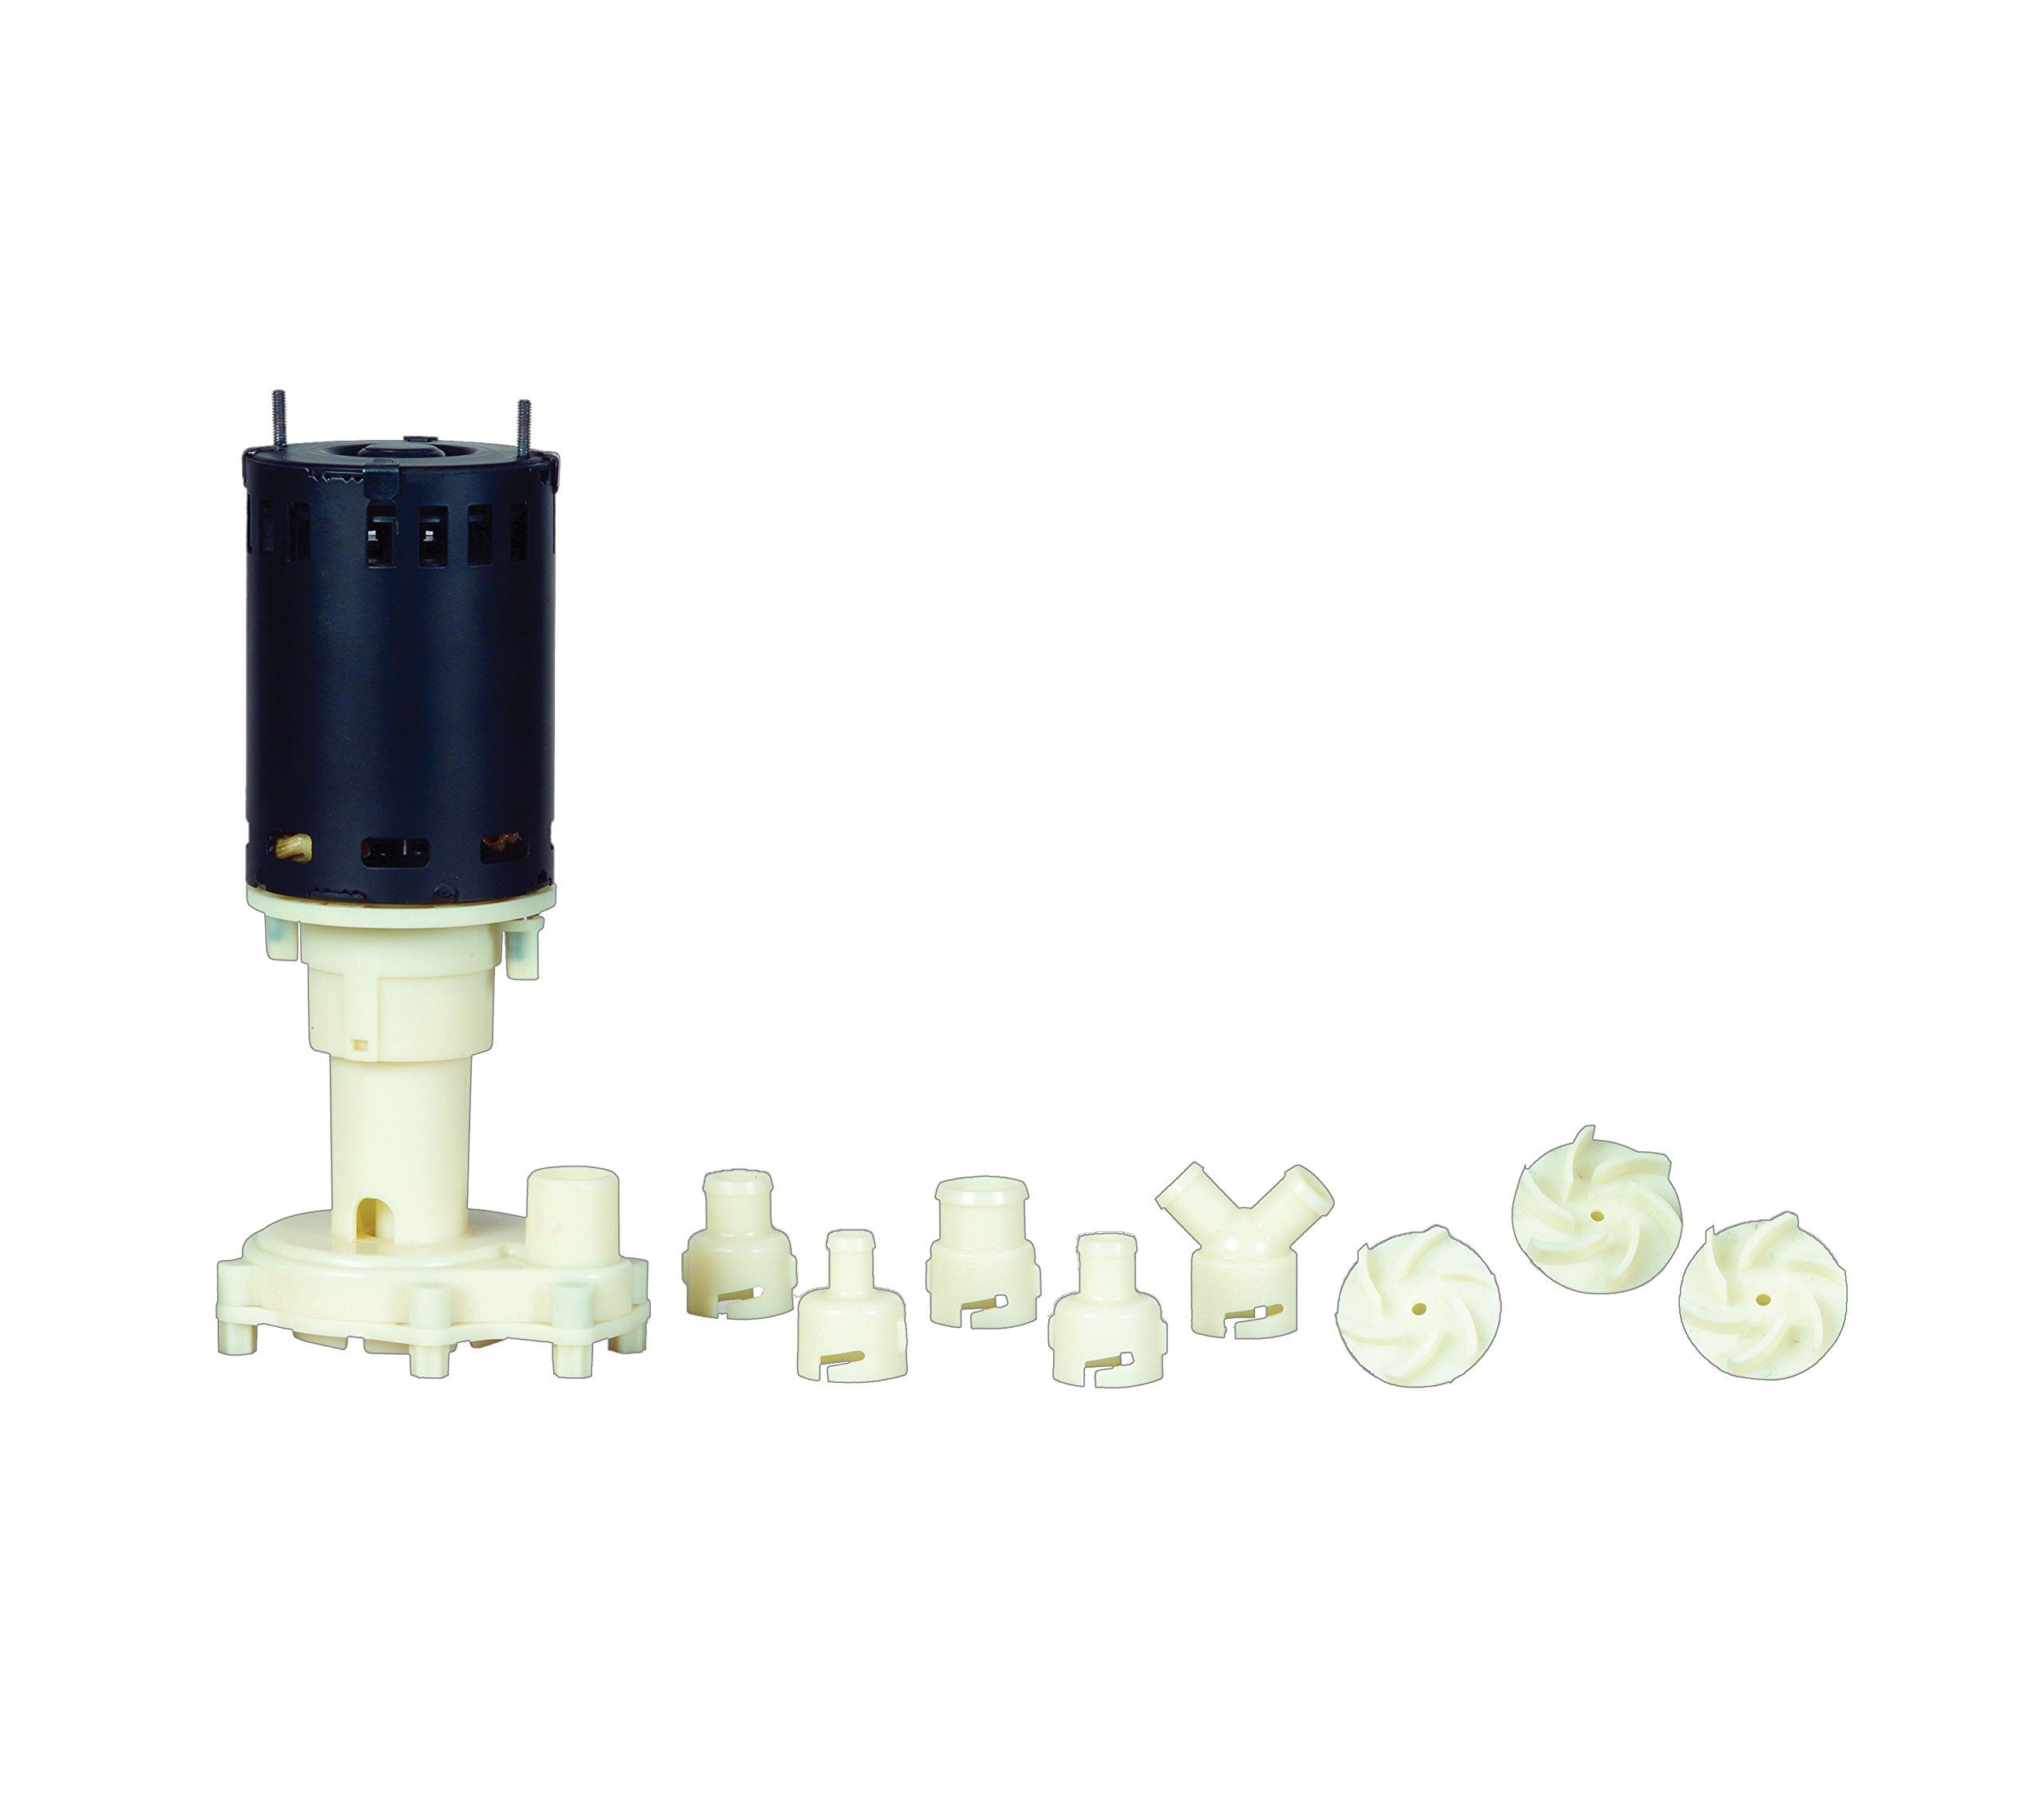 Little Giant 545600 Ice Machine Replacement Pump, 115/230V, 1/25 Hp, 585 GPH